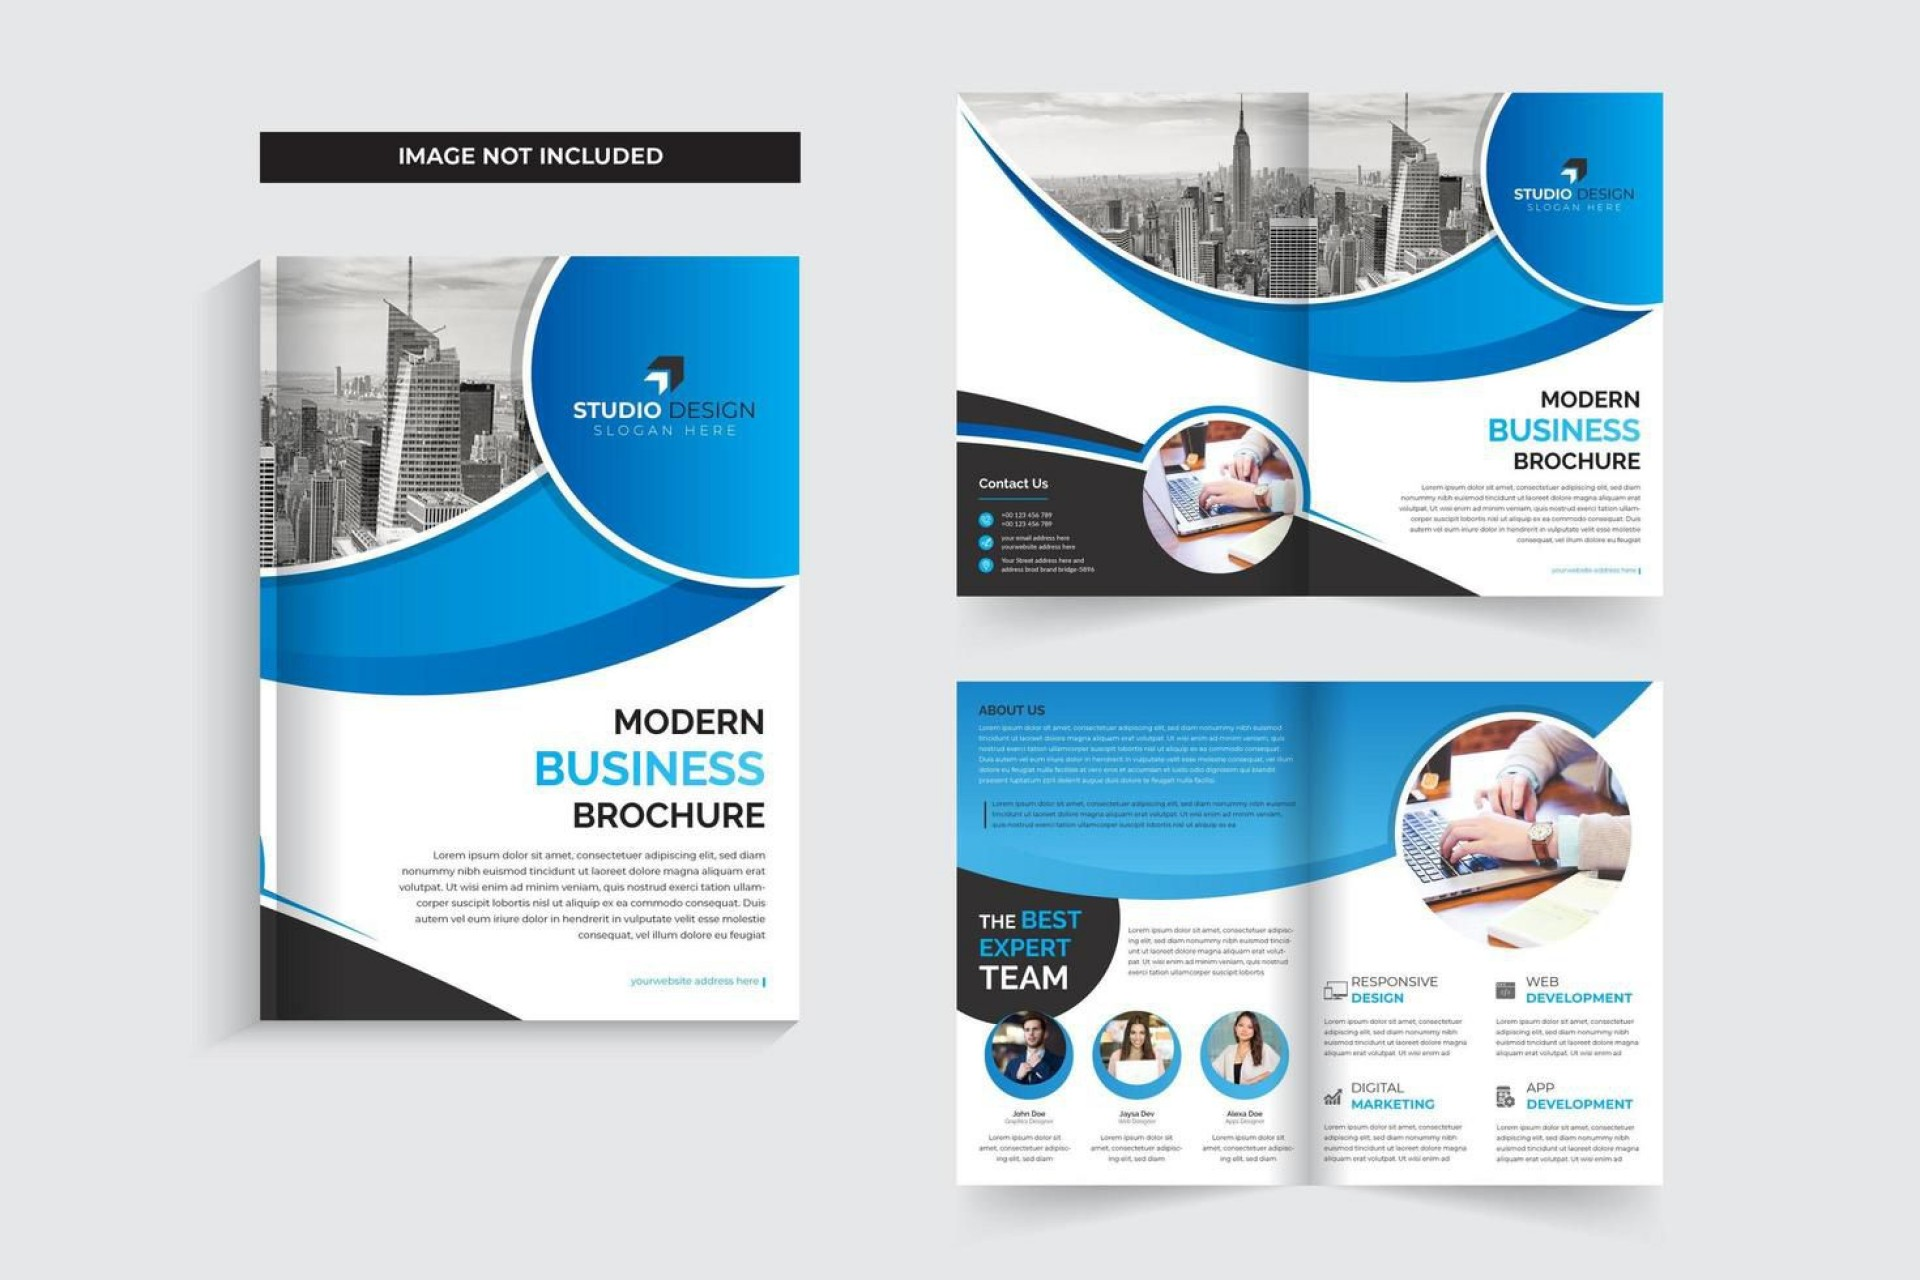 006 Impressive Free Brochure Template Download Idea  Psd Tri Fold For Word Corporate Busines1920